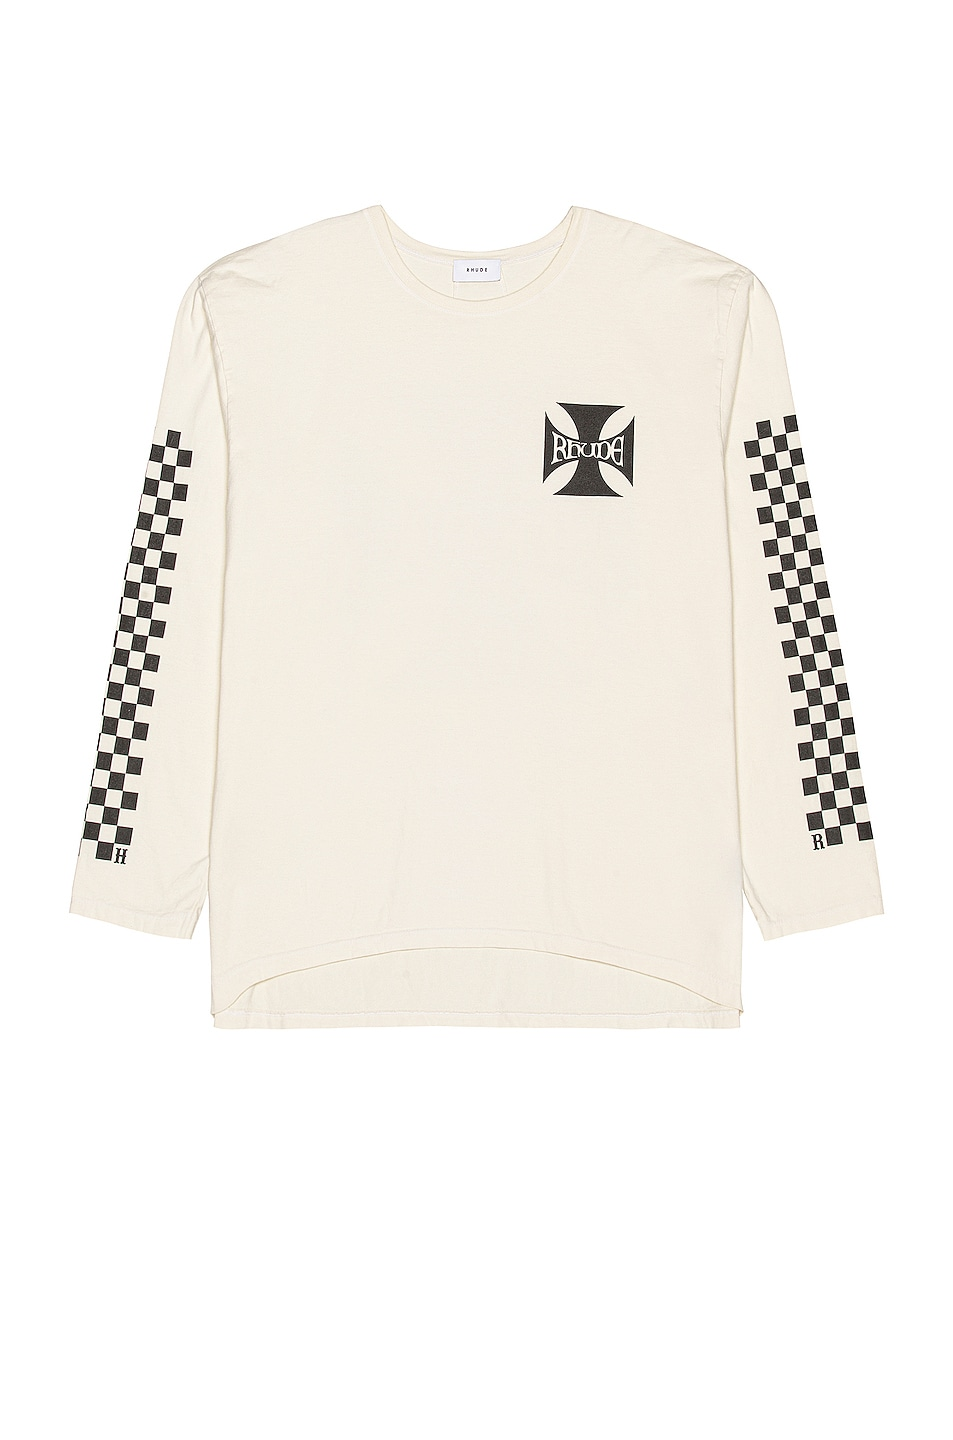 Image 1 of Rhude Classic Checkers Long Sleeve Tee in White